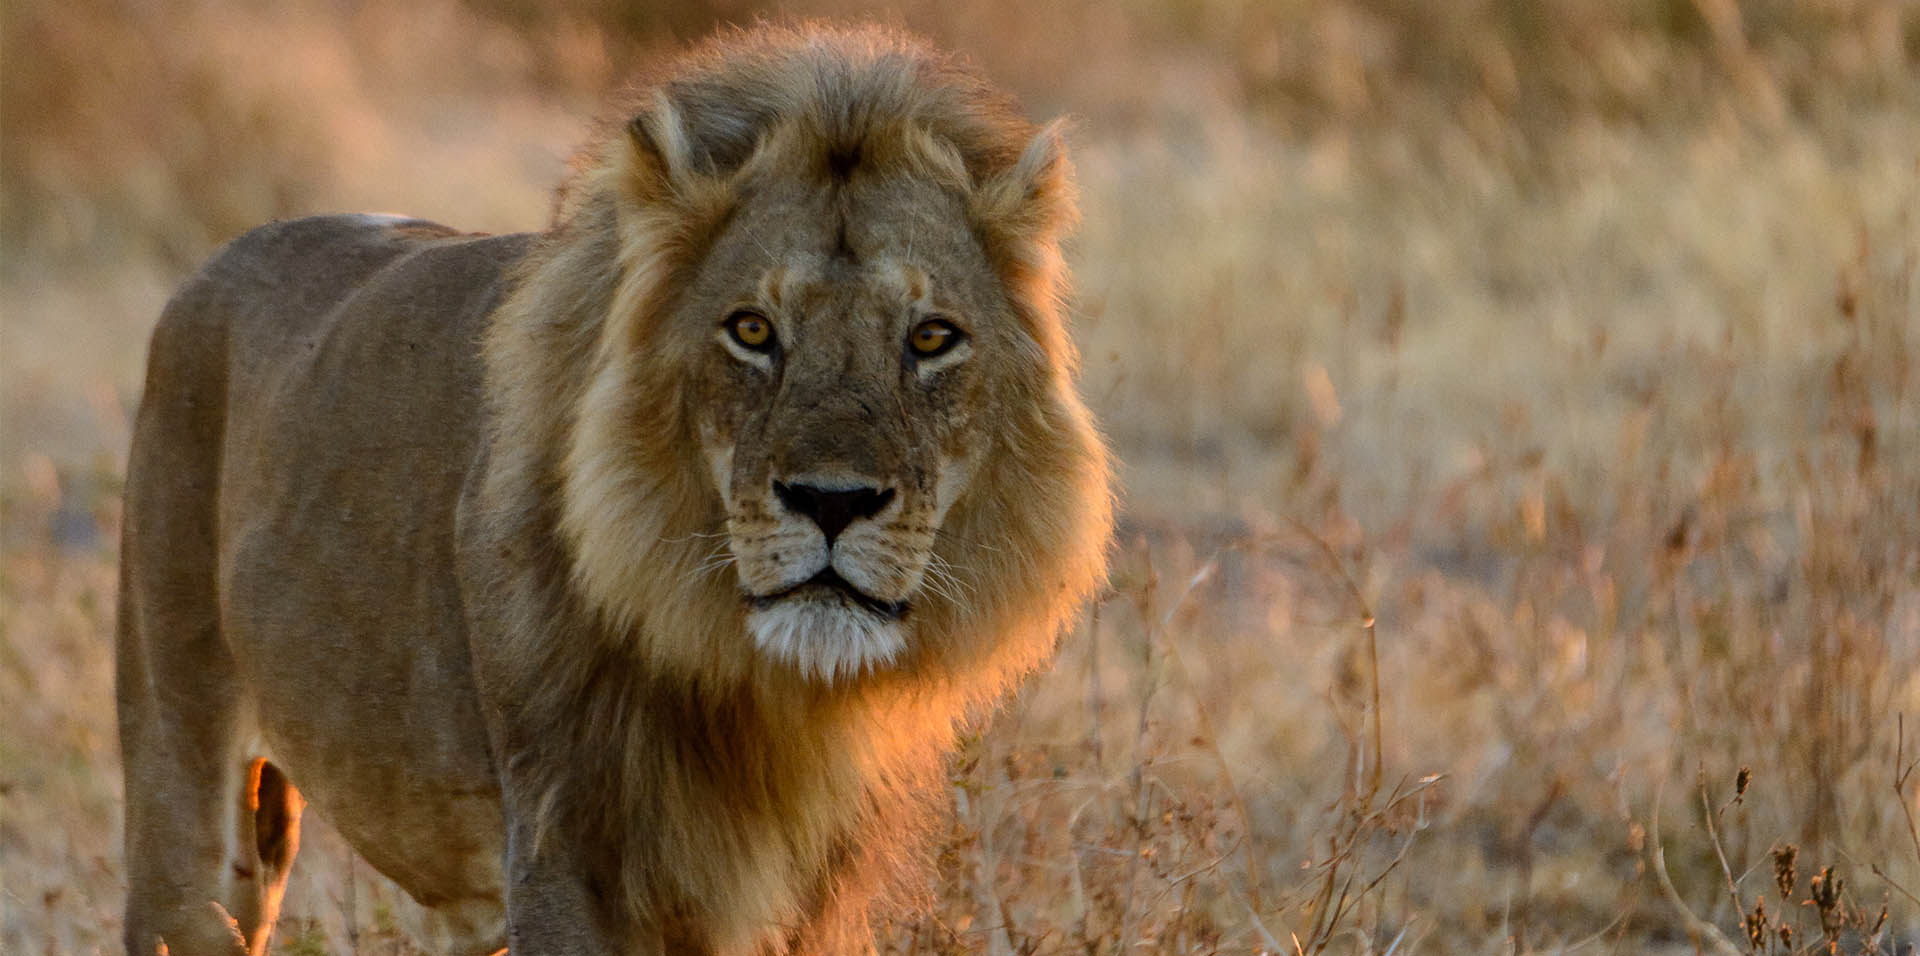 Find out more about a Big Cats Experience with Asilia Africa